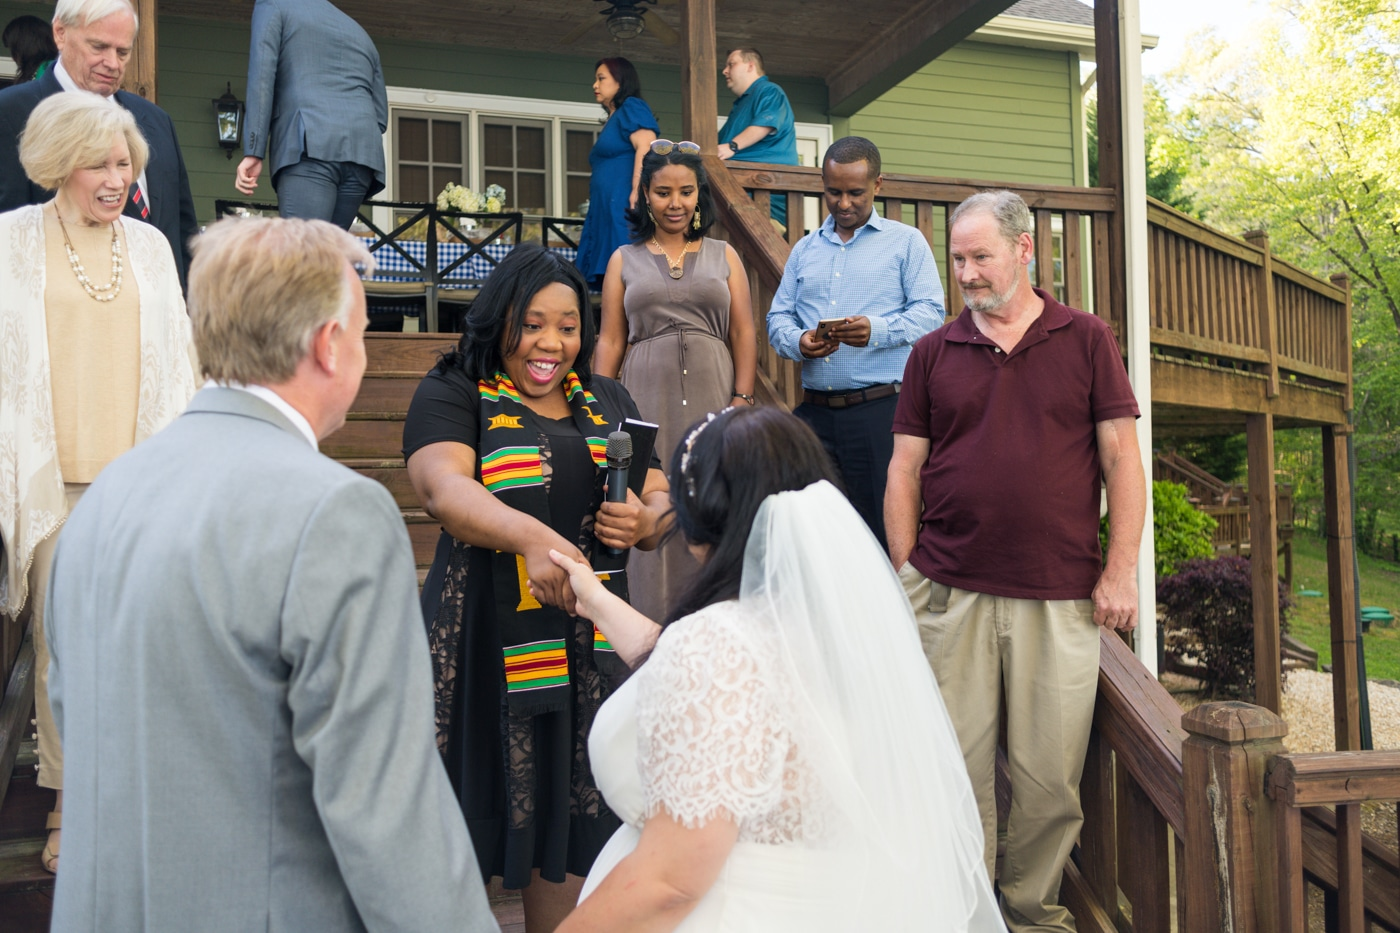 officiant looks at bride's hand during wedding photos